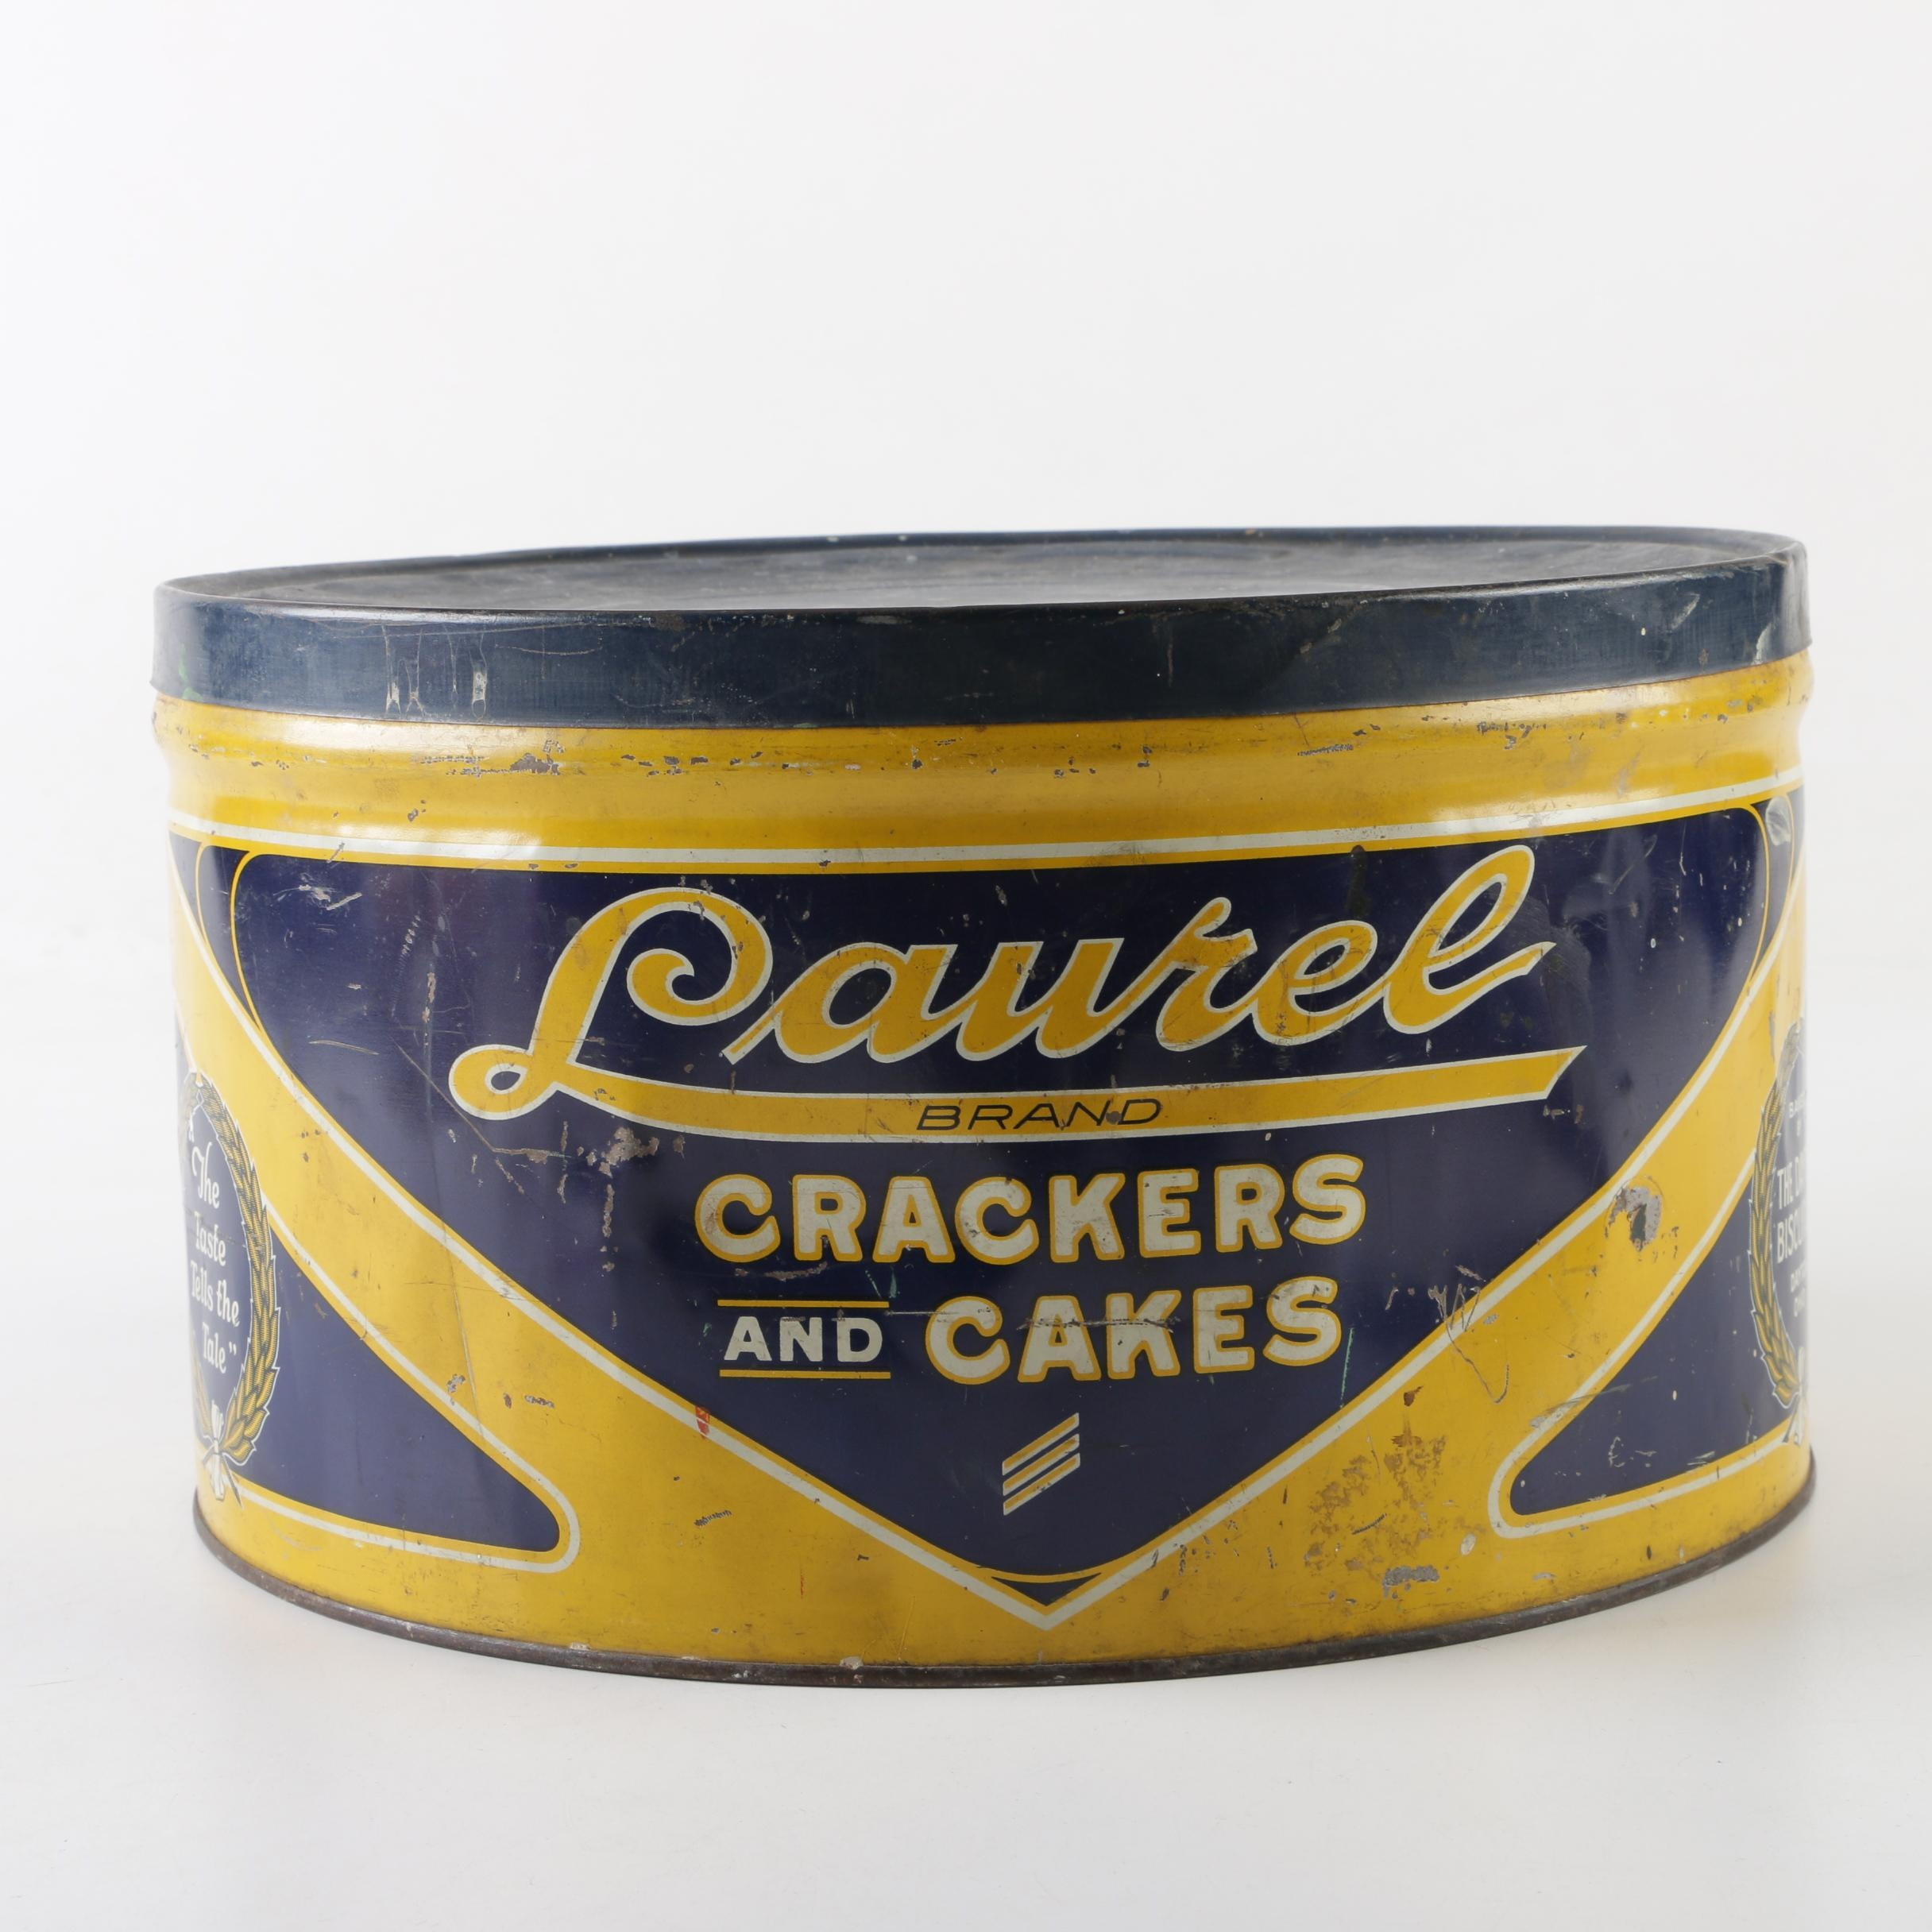 Laurel Crackers and Cakes Tin by The Dayton Biscuit Co., 1940s - 1950s